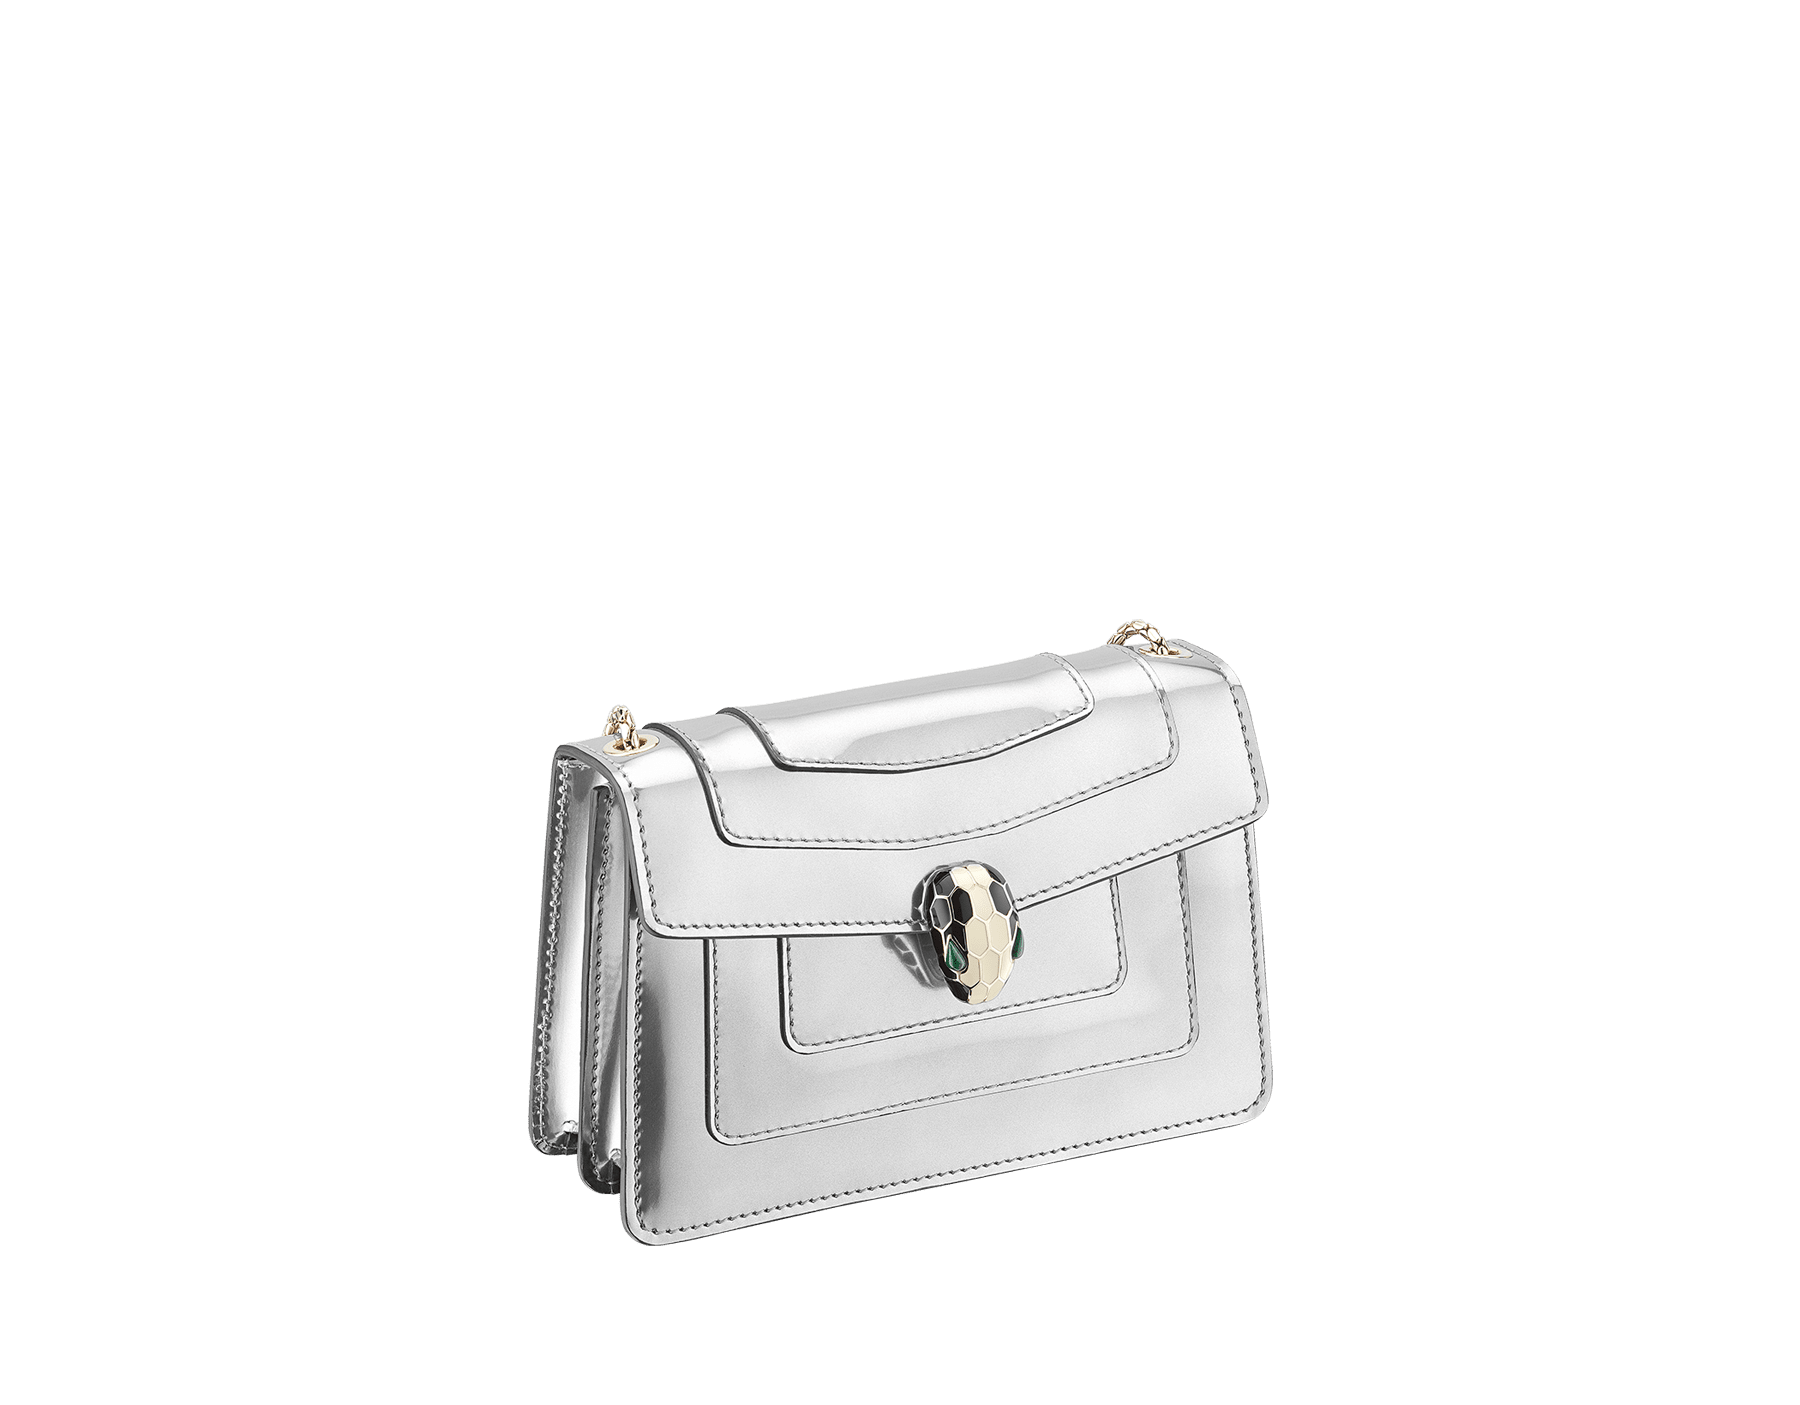 Serpenti Forever mini crossbody bag in silver brushed metallic calf leather. Brass light gold plated snake head closure in black and white enamel, with green malachite eyes. 288051 image 2